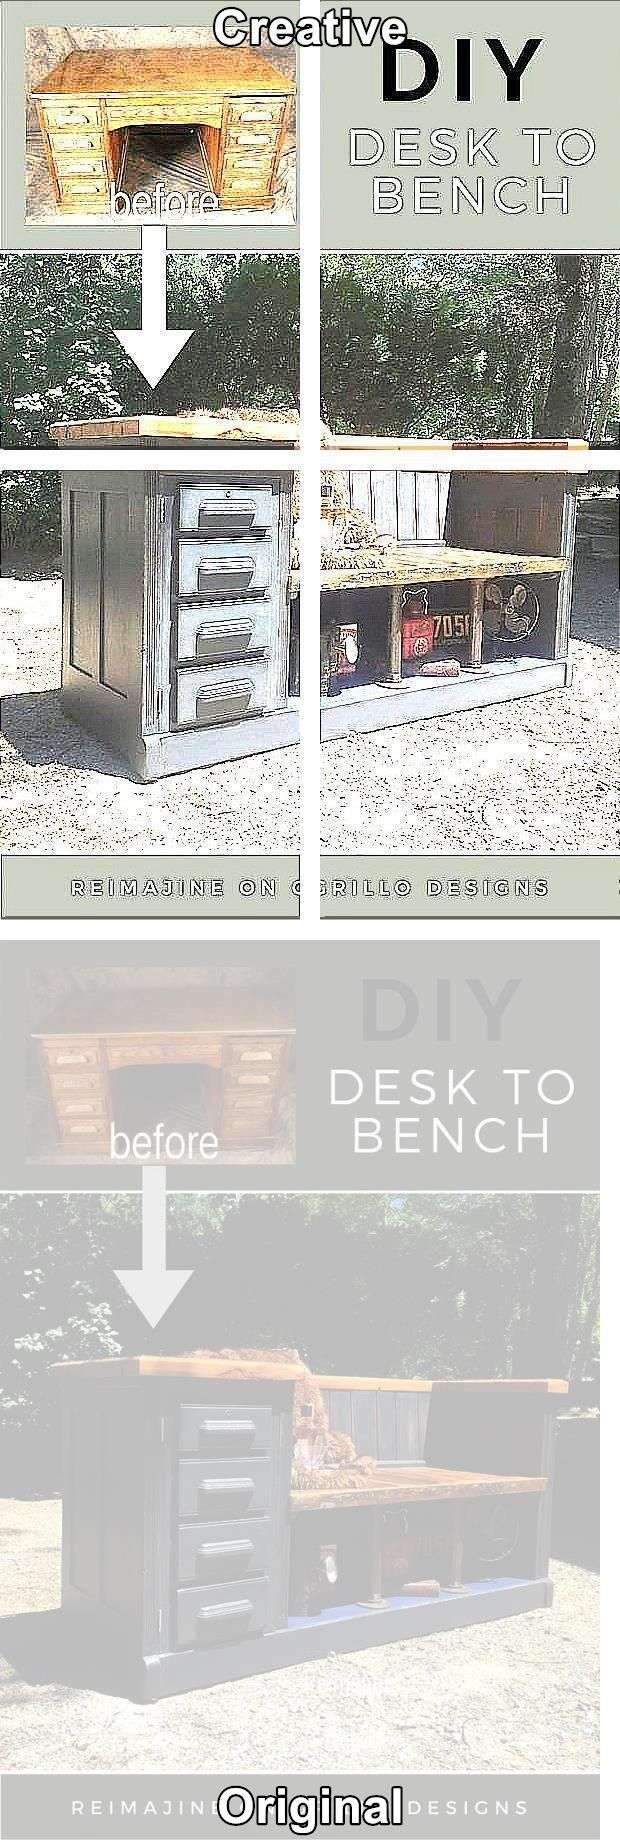 Recycled Furniture Ideas | Recycled Bedroom Furniture | Recycled Refurbished Fur…